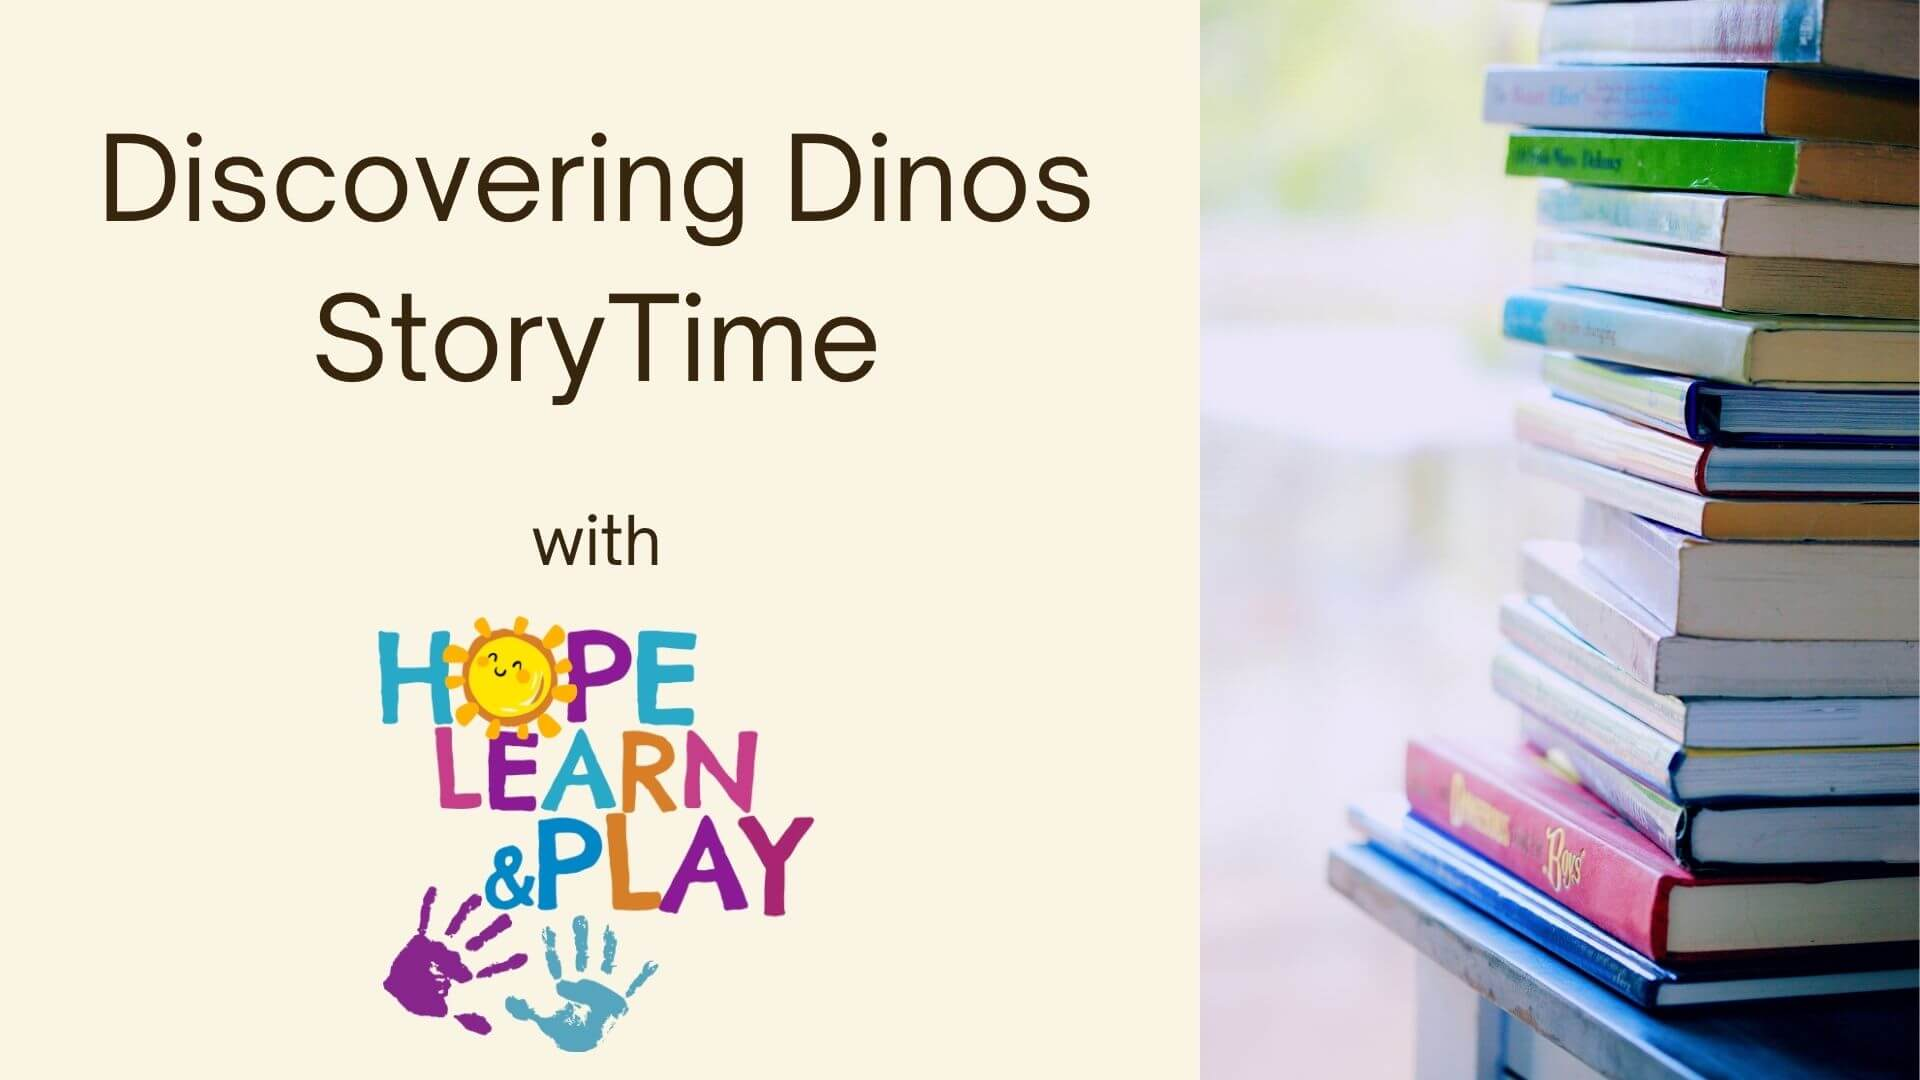 Discovering Dinos Story time